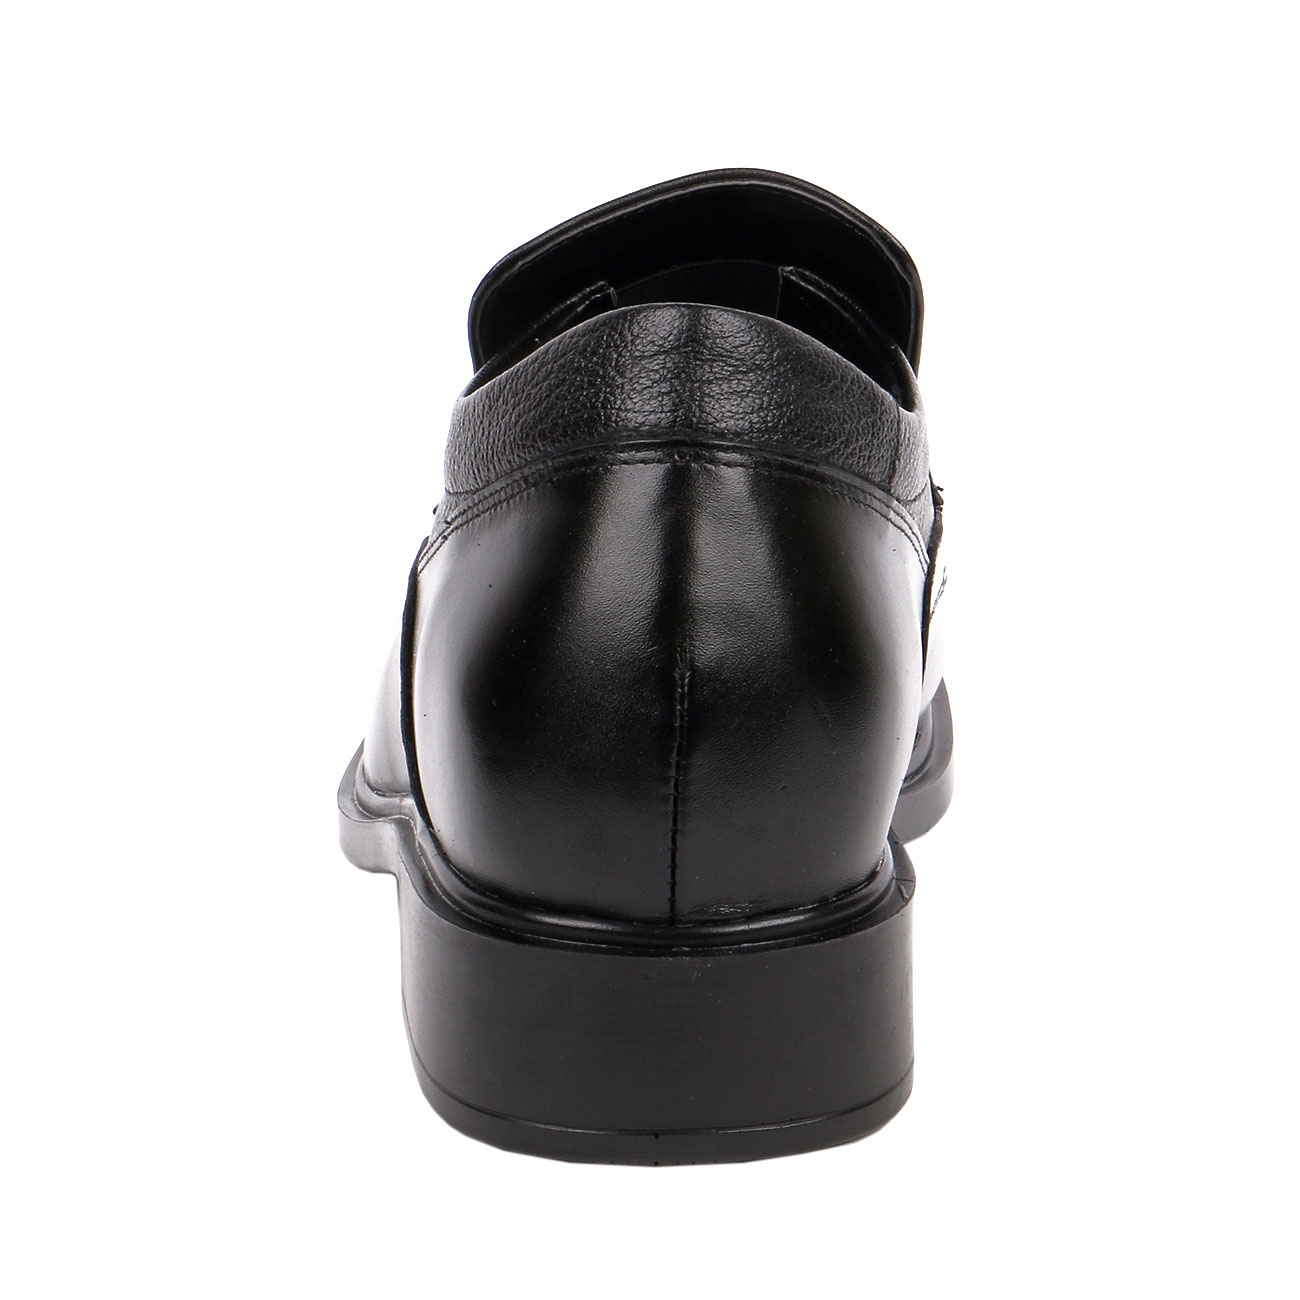 KL602, Limited Version of Metal Bit Loafer More Attractive Gentlemen Make An Effort To Look Good-3